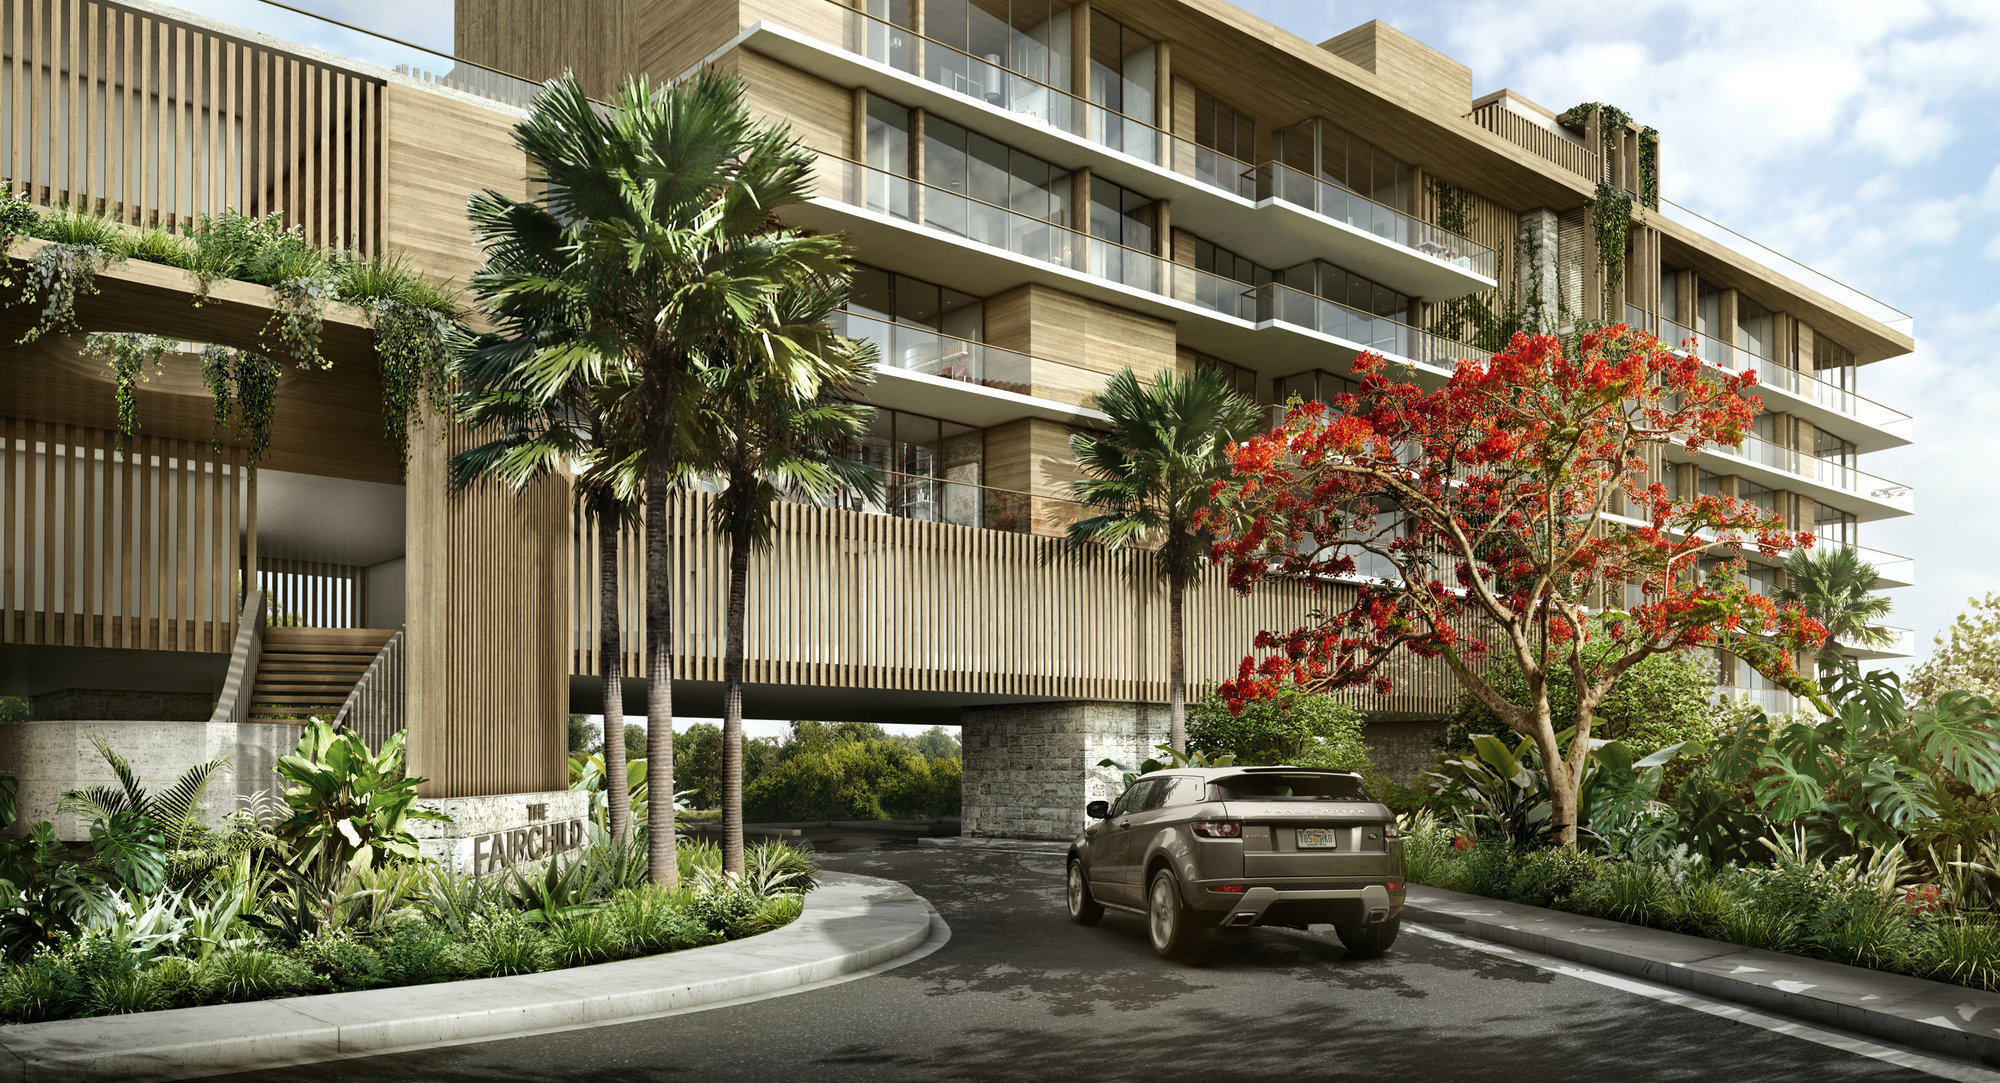 Construction of The Fairchild Coconut Grove Luxury Condos set to begin in 2019